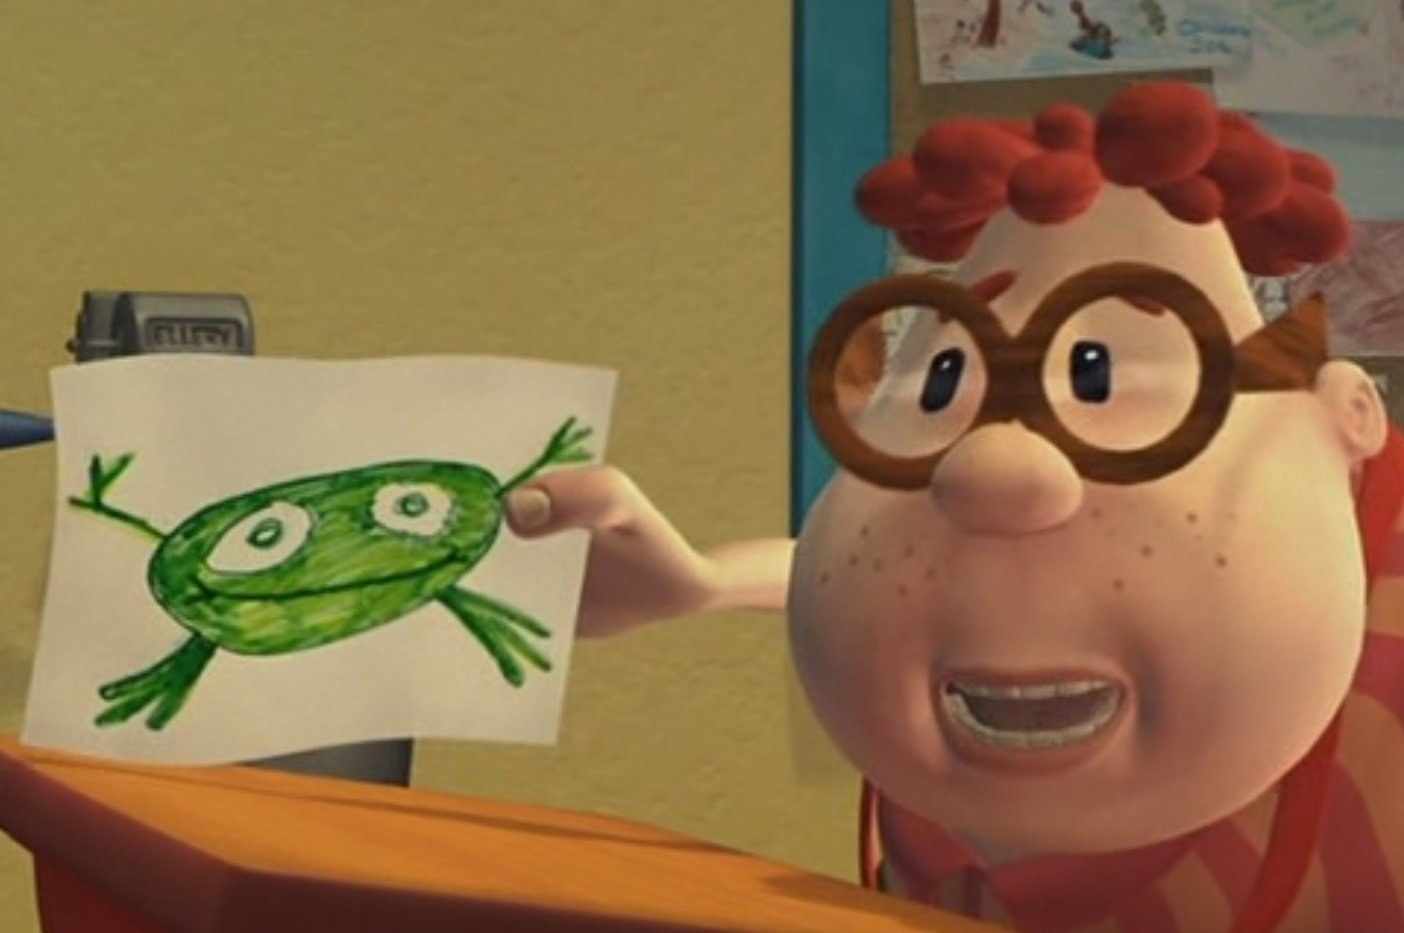 Carl Wheezer holds up a picture of a frog that he drew